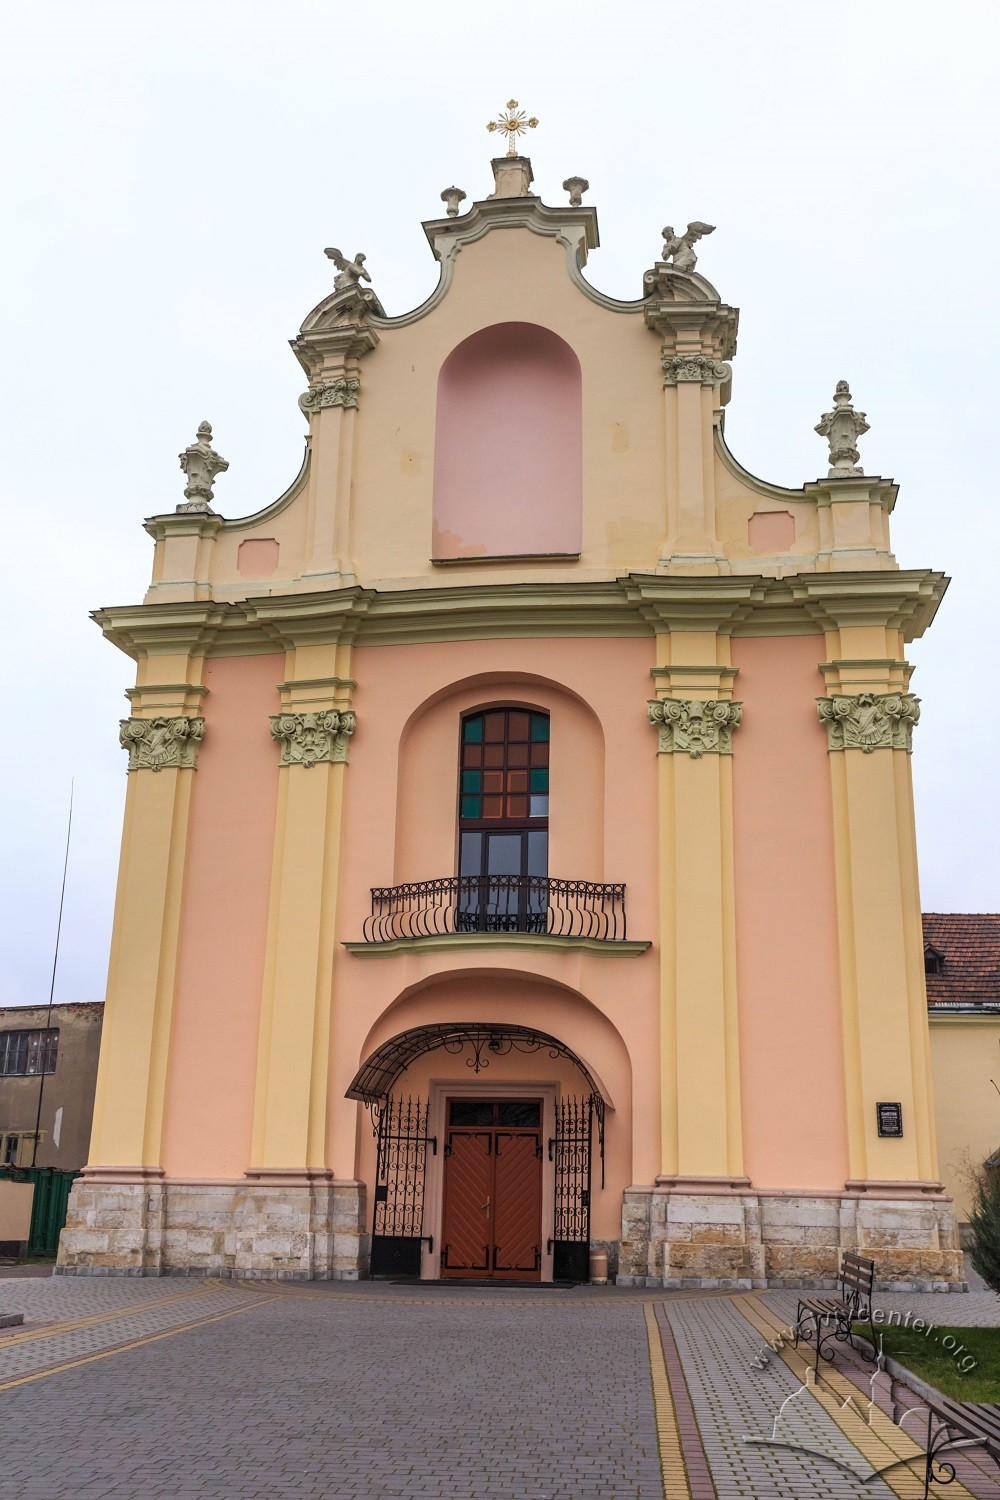 Vul. Zhovkivska, 8. The western facade of the church, now a prayer hall building/Photo courtesy of Nazarii Parkhomyk, 2015